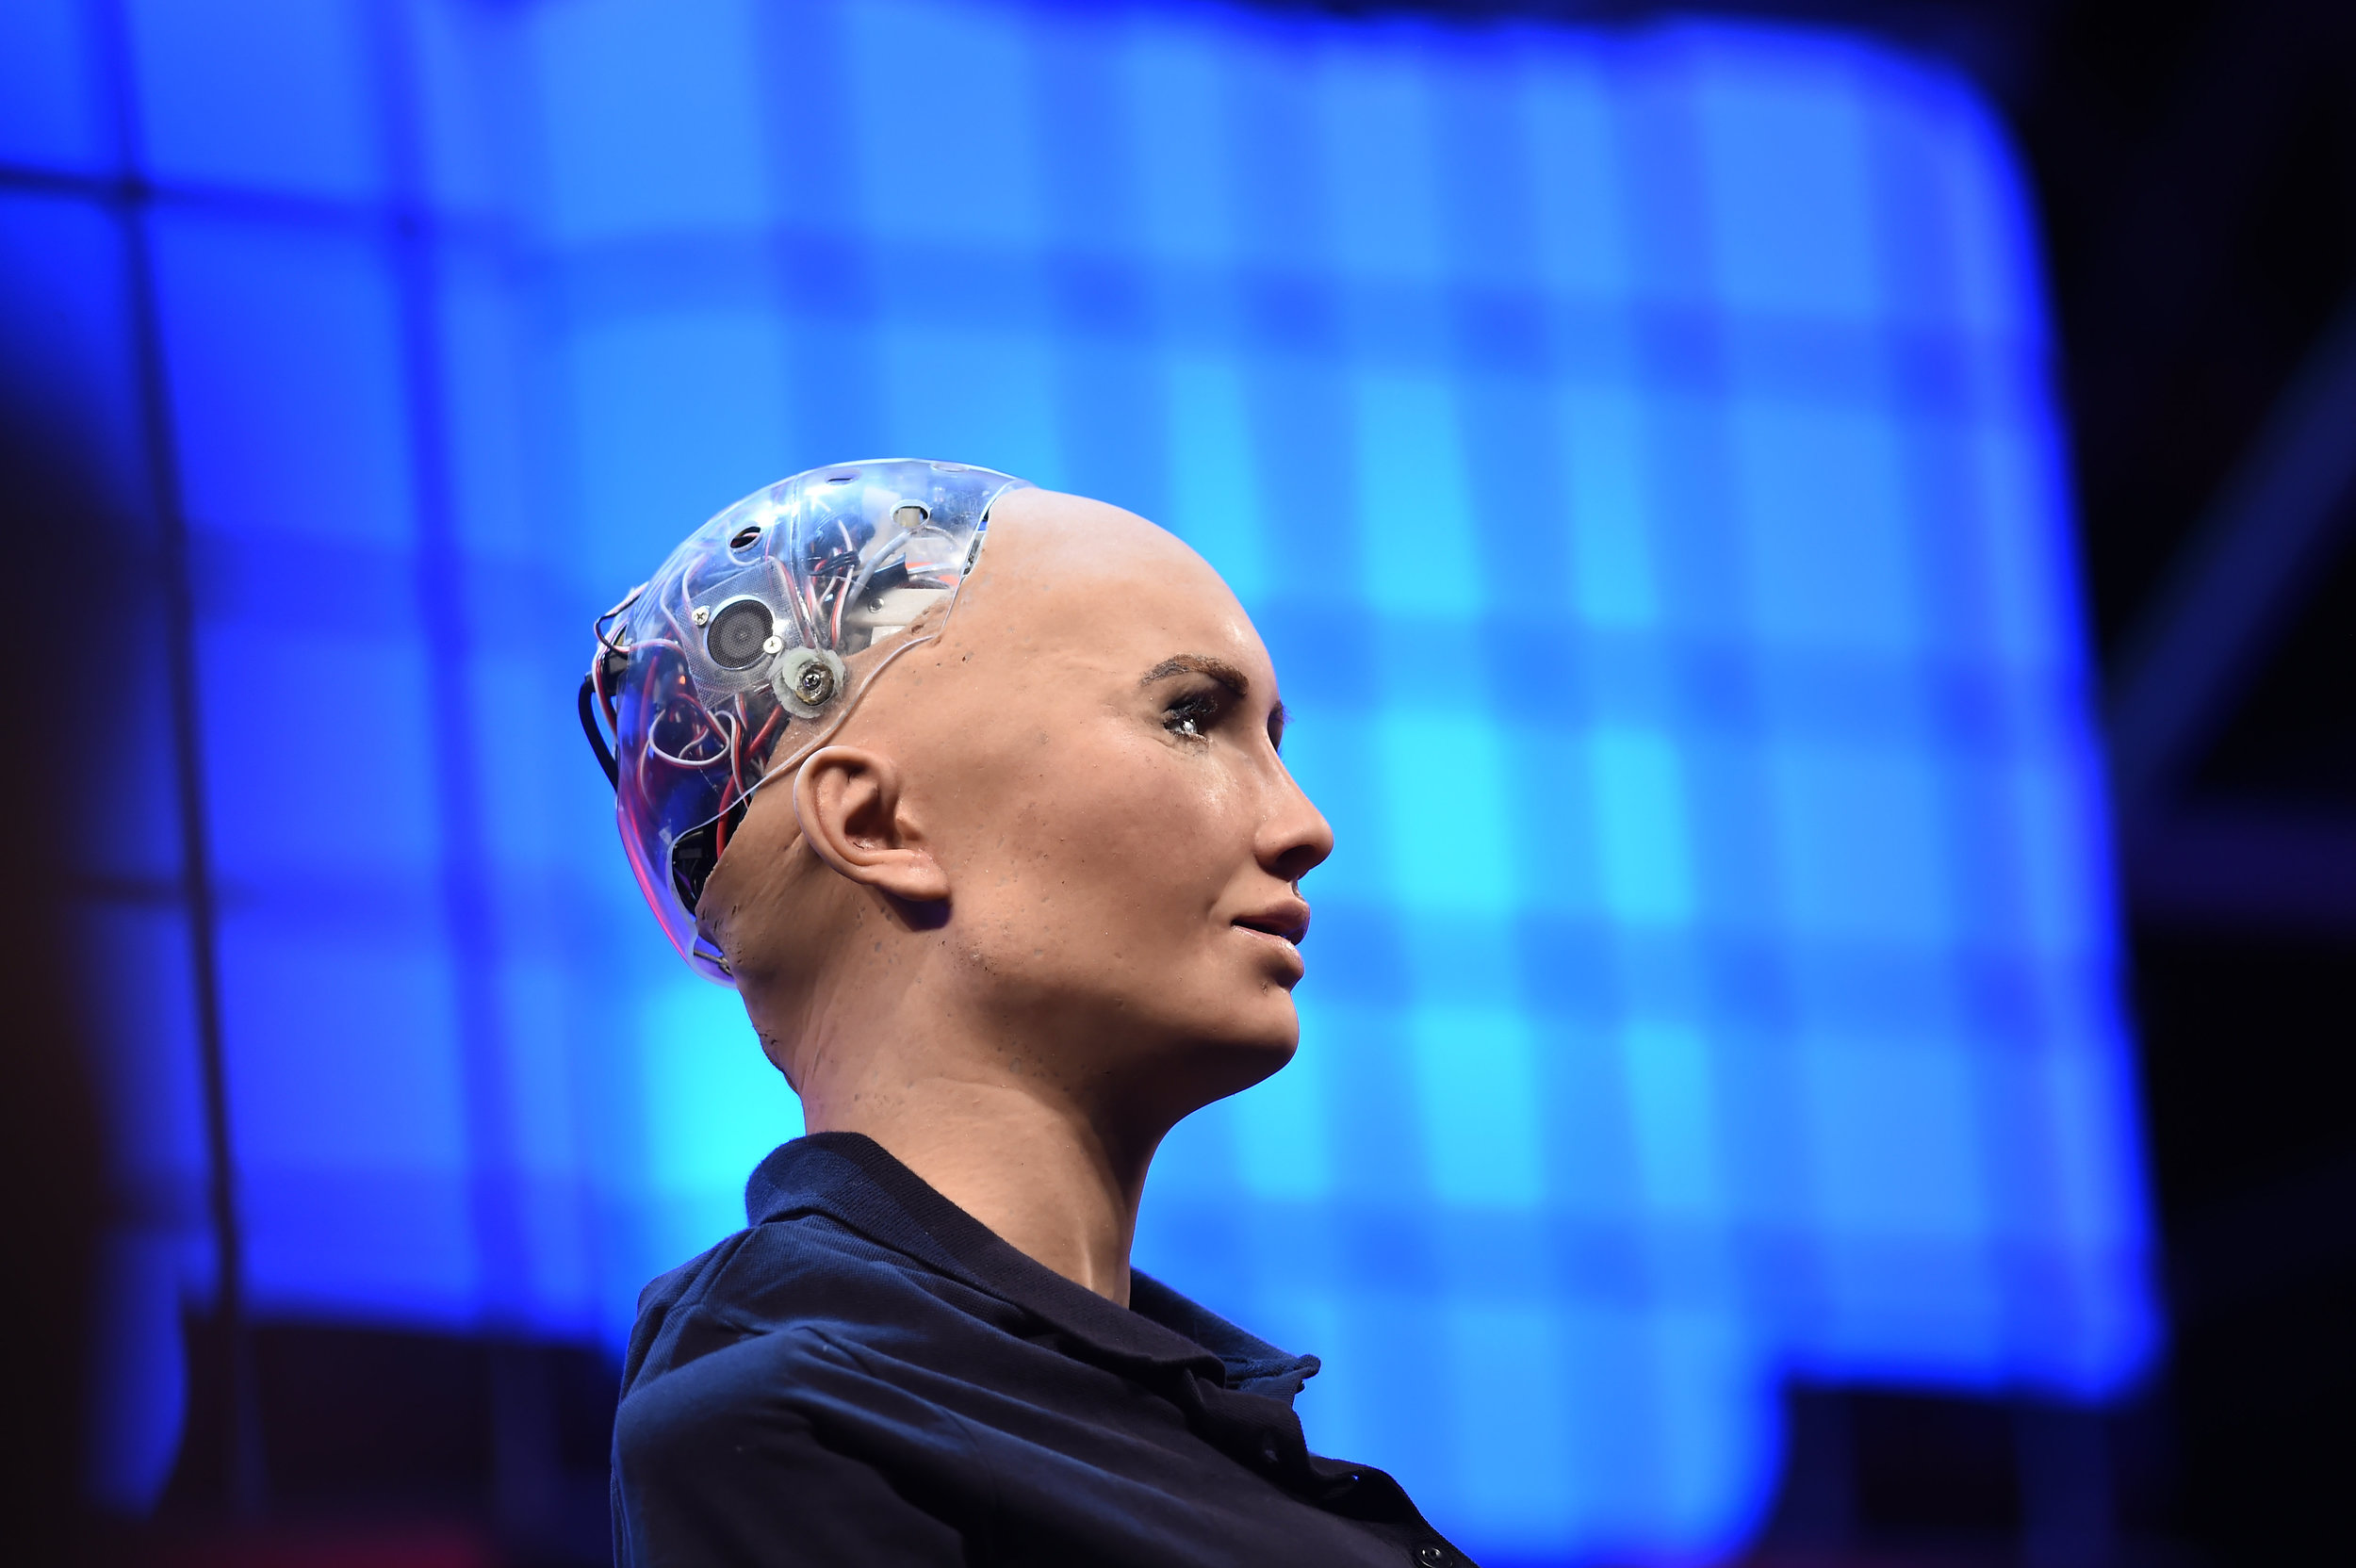 """EMOTIONAL: """"I have feelings too"""", Sophia the robot claims. This may have consequences, researcher Deborah G. Johnson warns. PHOTO:  Stephen McCarthy/Web Summit via Sportsfile/Flickr"""